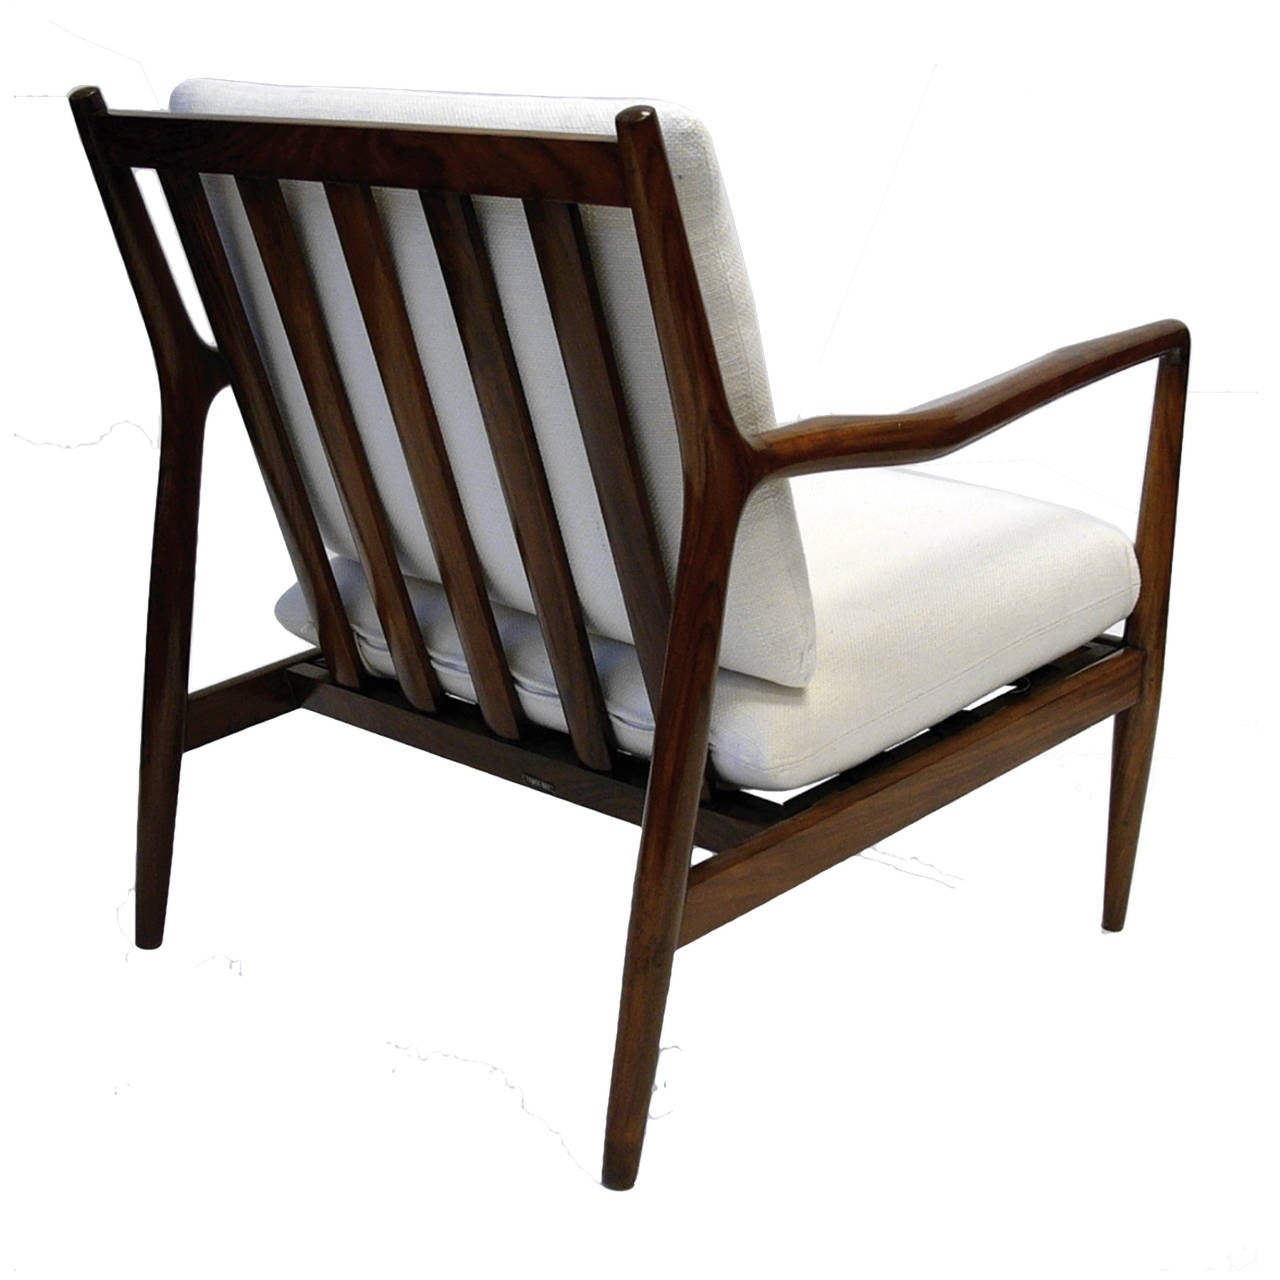 stool chair price in pakistan best dorm lounge rare pair of indian rosewood chairs from peshawar